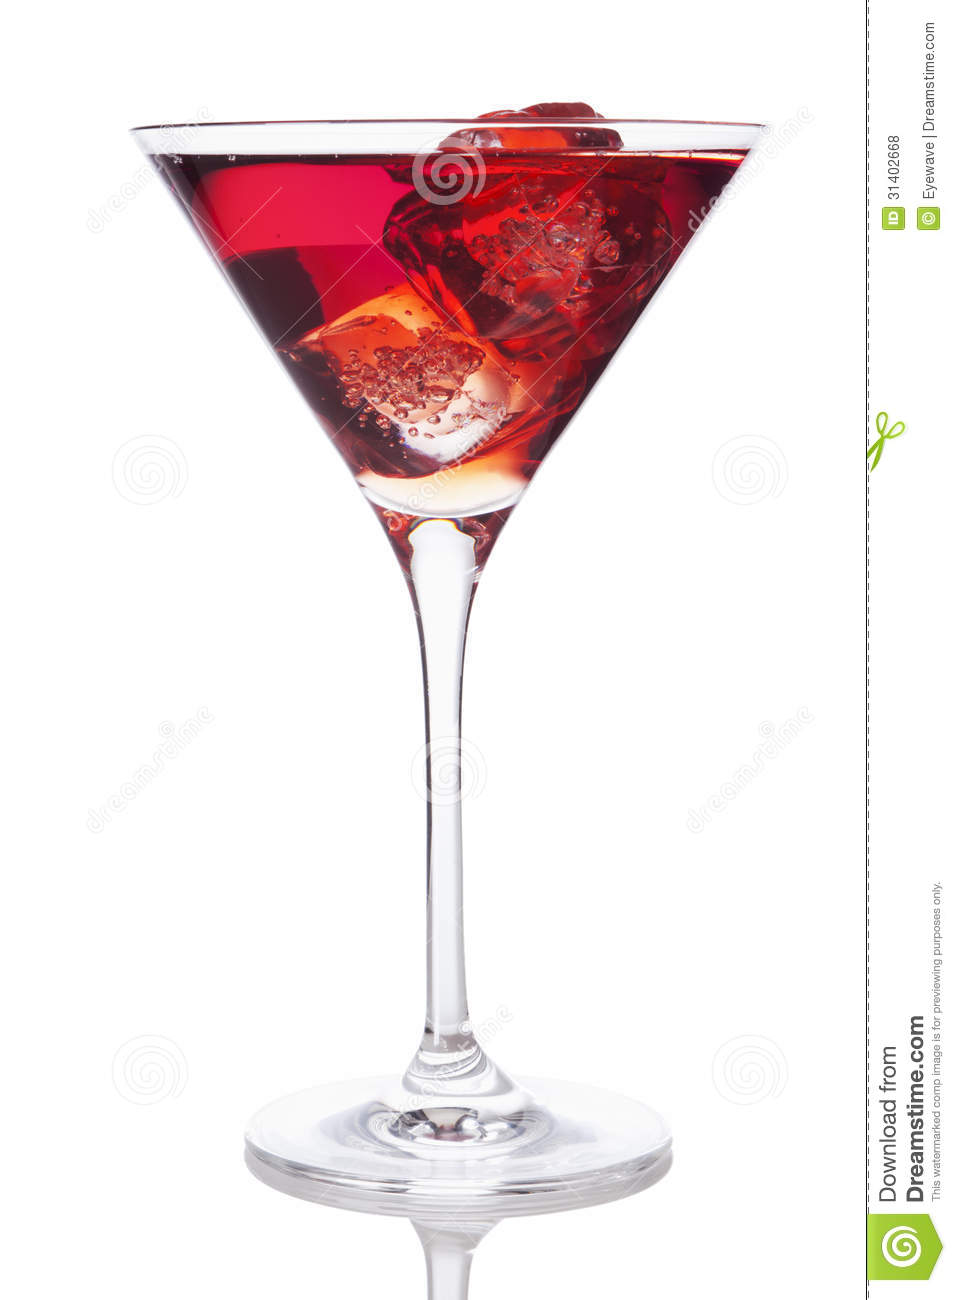 red drink in martini glass with ice cubes royalty free. Black Bedroom Furniture Sets. Home Design Ideas